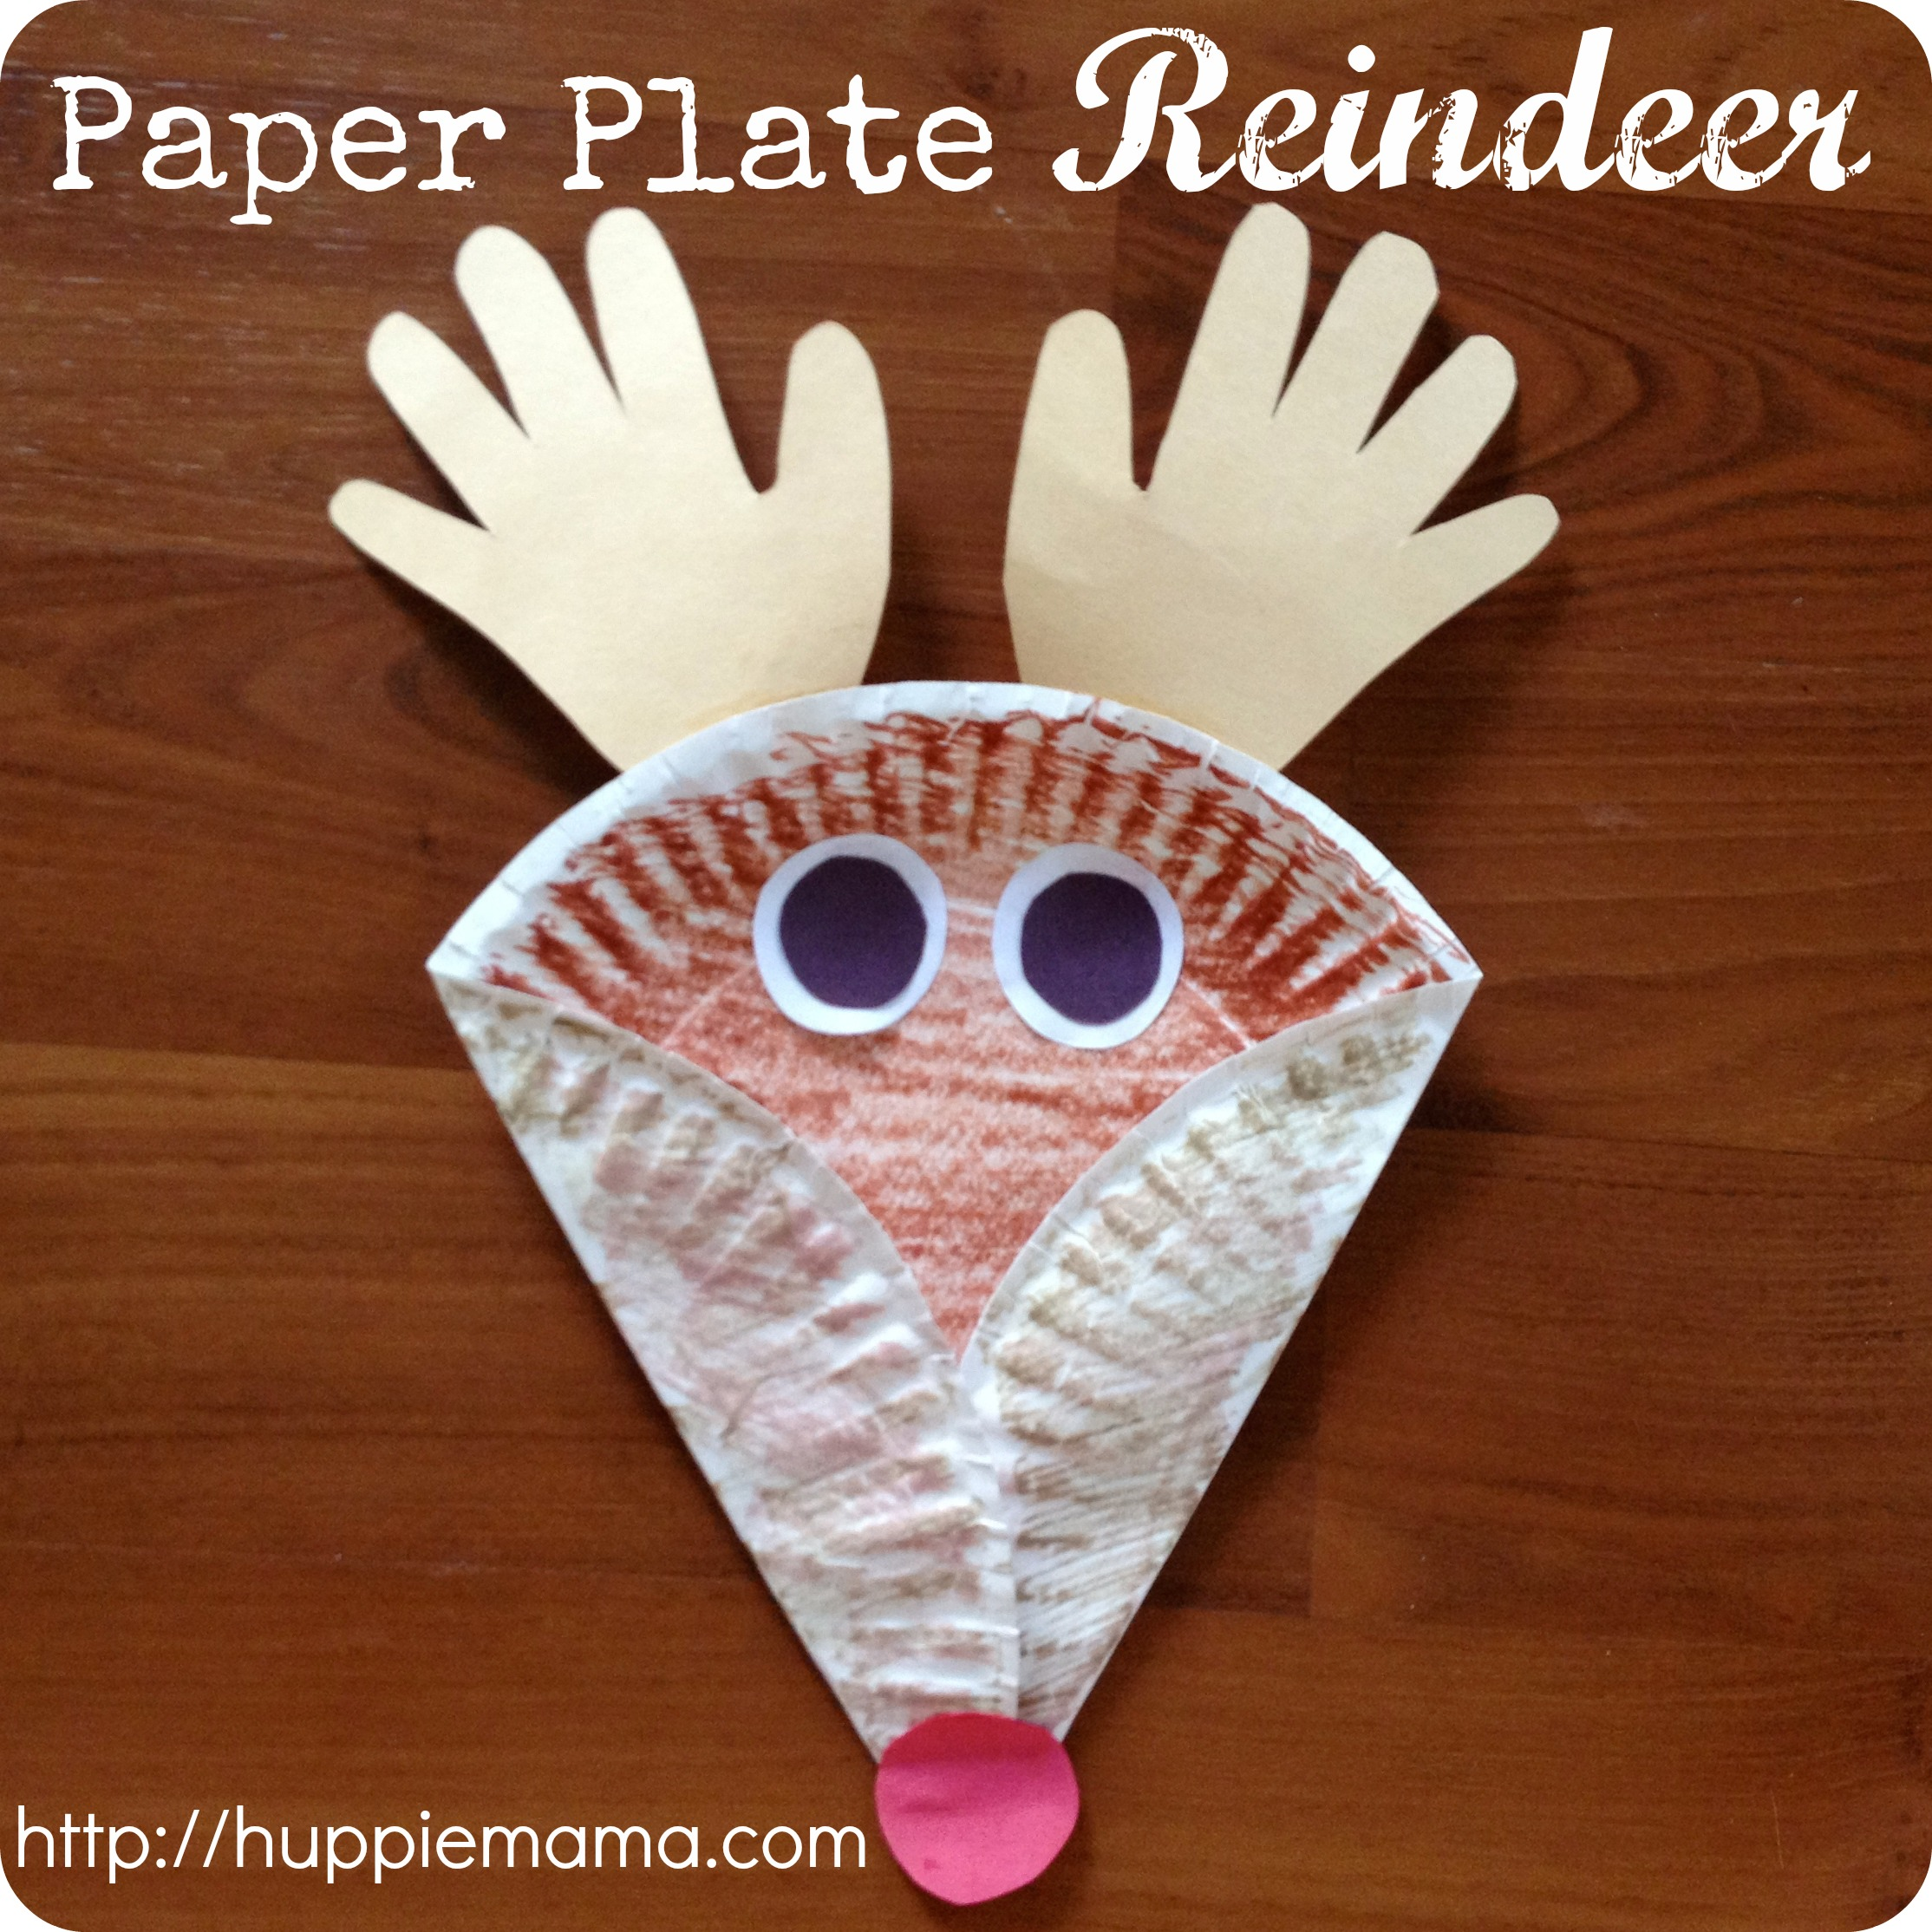 Paper plate reindeer step 4 carrie rose for Reindeer project